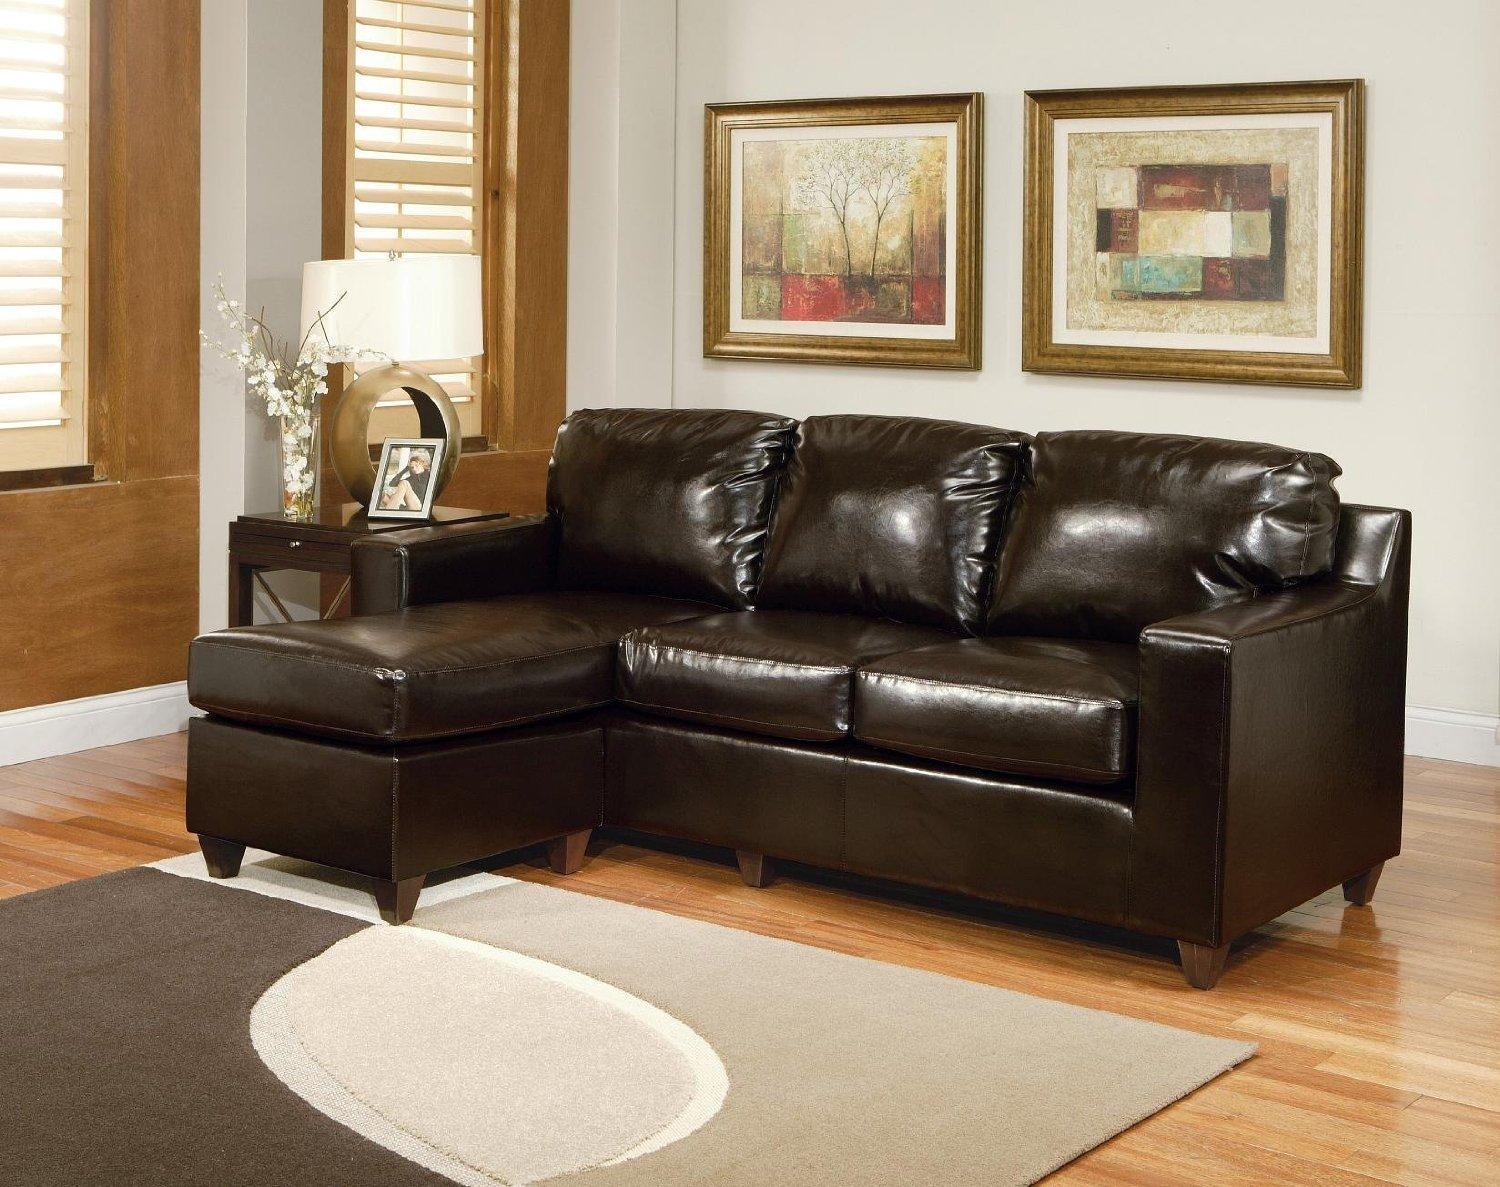 Sofas Center : Small Leatheral Sofa Torontosmall With Chaise Within Small Scale Leather Sectional Sofas (Image 16 of 20)